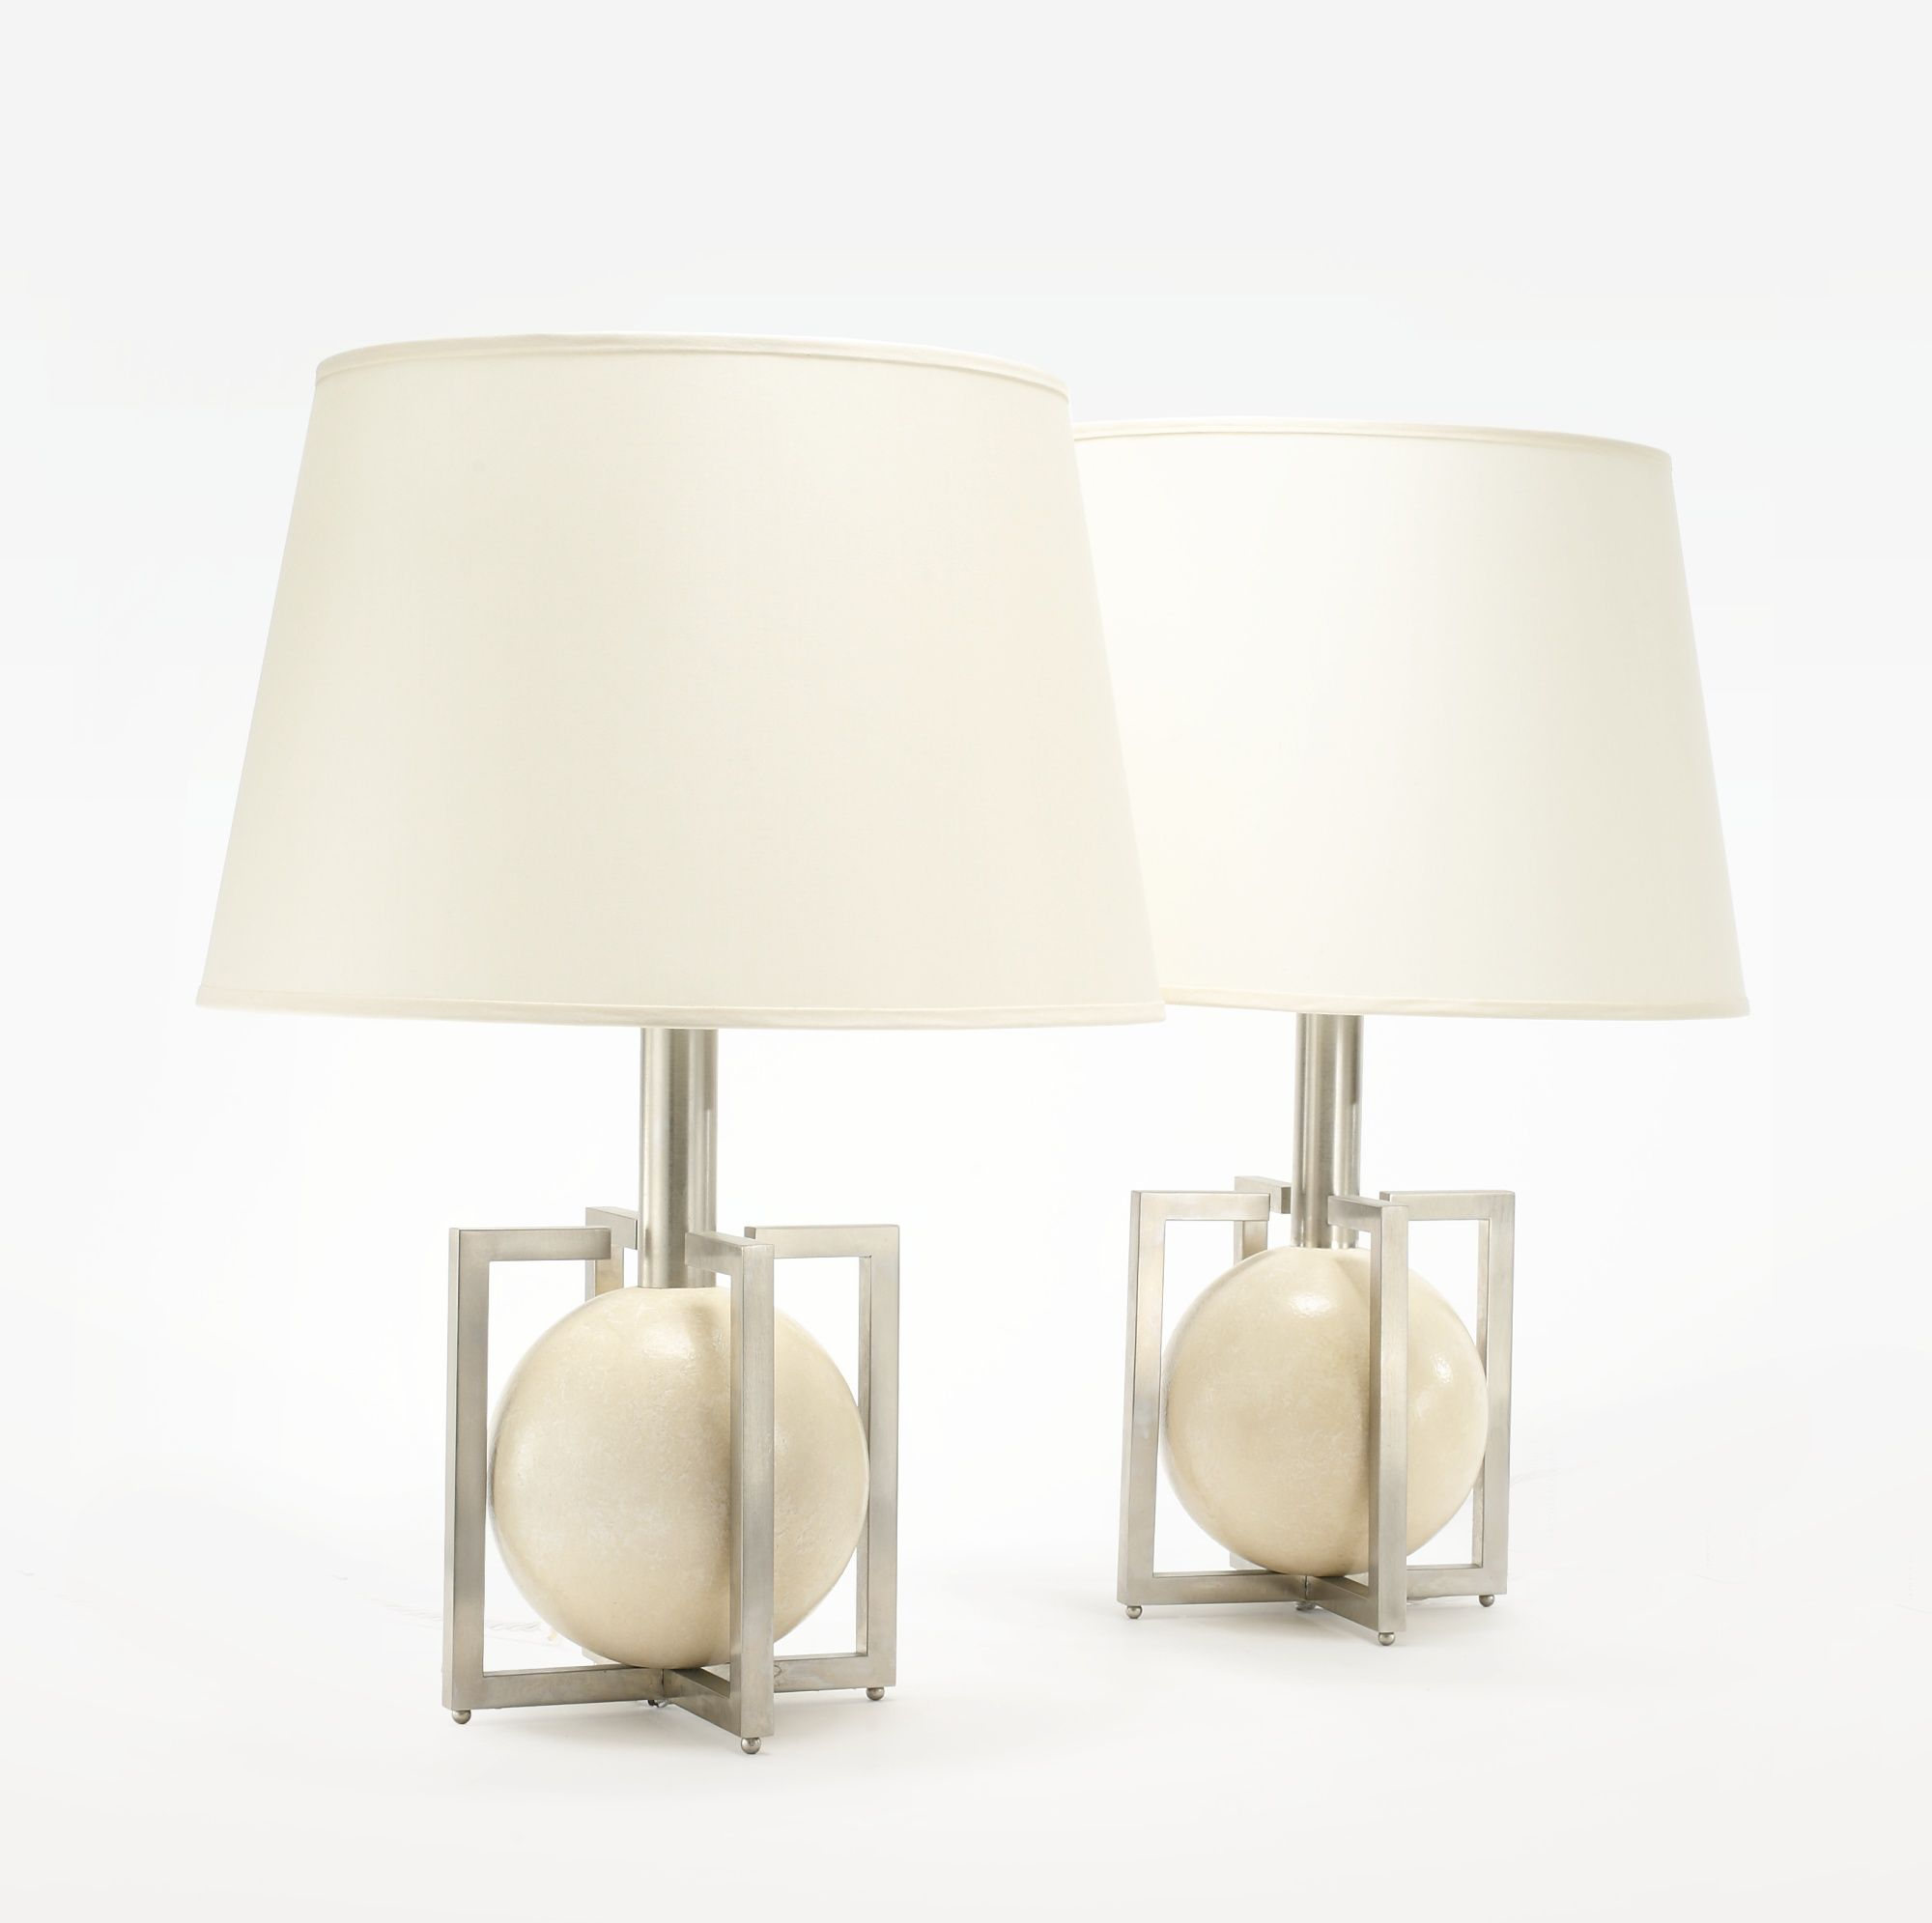 Murano gl floor lamp murano gl floor lamps 173 for at 1stdibs - James Mont Pair Of Table Lamps Lacquered Wood Nickel And Paper Shades 25 3